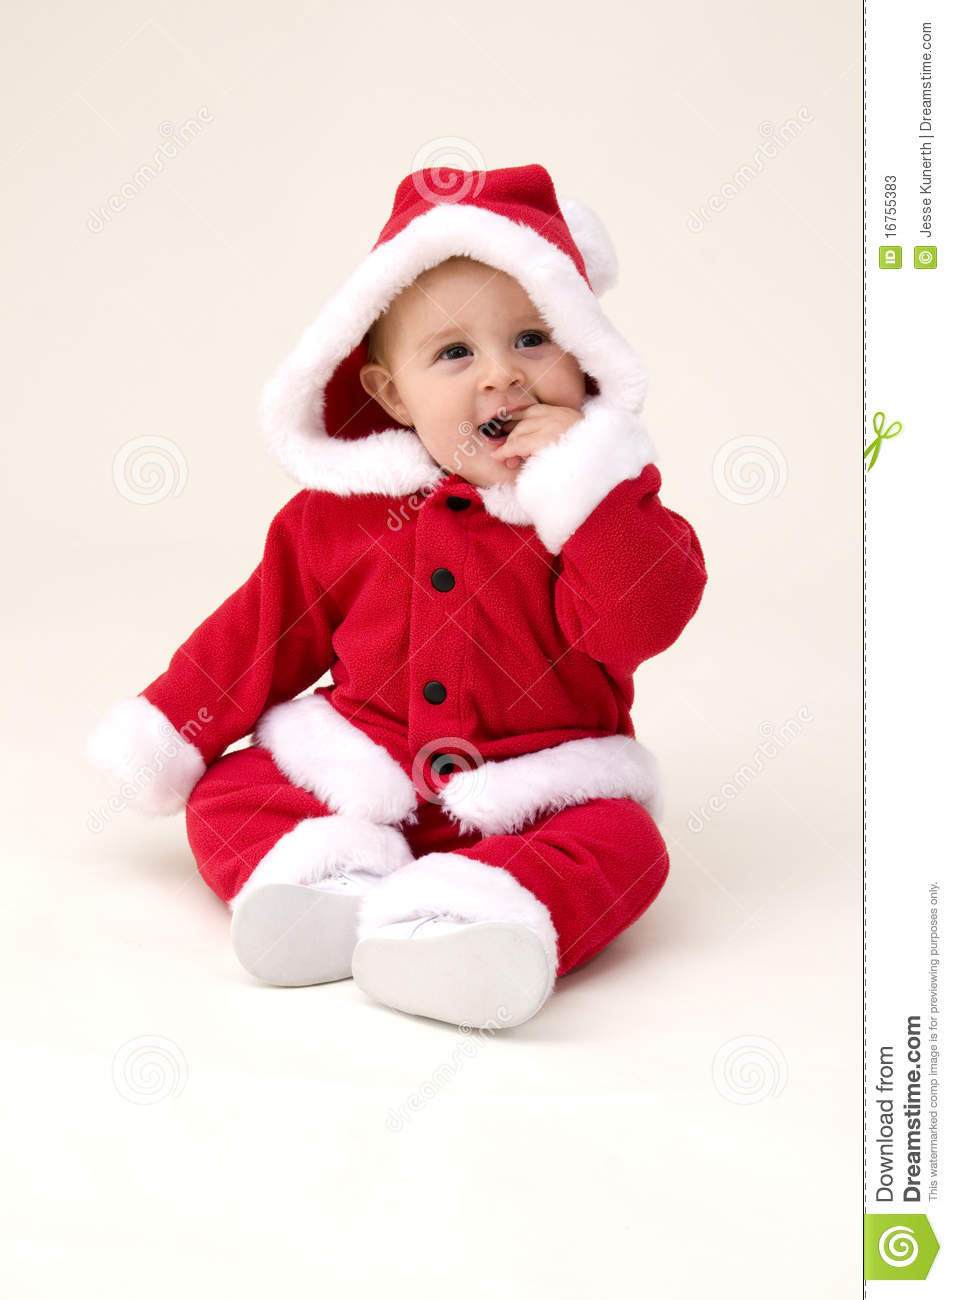 DIY Crochet Baby Christmas Sets Free Pattern. Christmas outfits ideas for baby boys and girls. Who doesn't love to see adorable little kids all dressed up for Christmas. Crochet - (I don't have a baby to put this on but I am hoping for a girl one day) santa baby, hurry down the chimney tonight! See more. Crochet Baby Ruffled Cardigan.